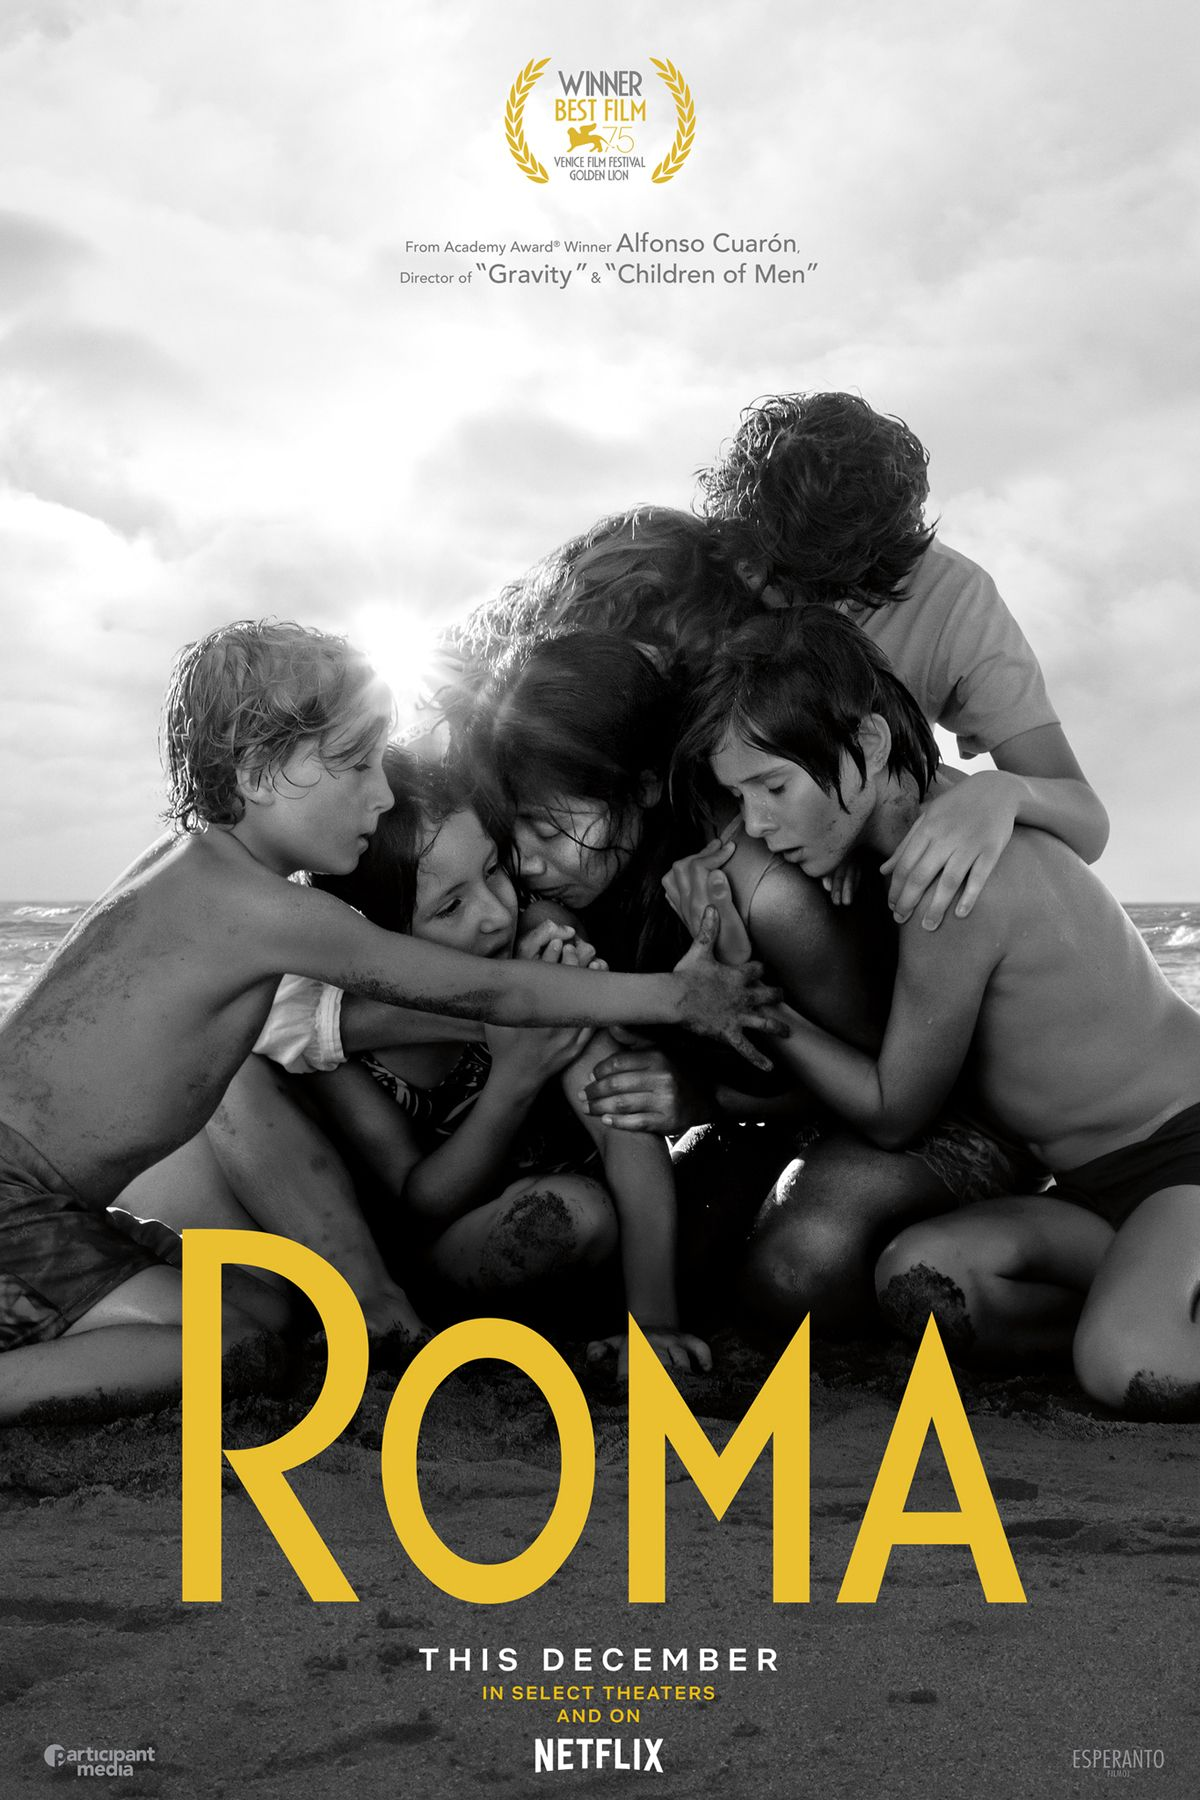 Themes and symbolism in Alfonso Cuaron's Roma | Meet Me In Montauk